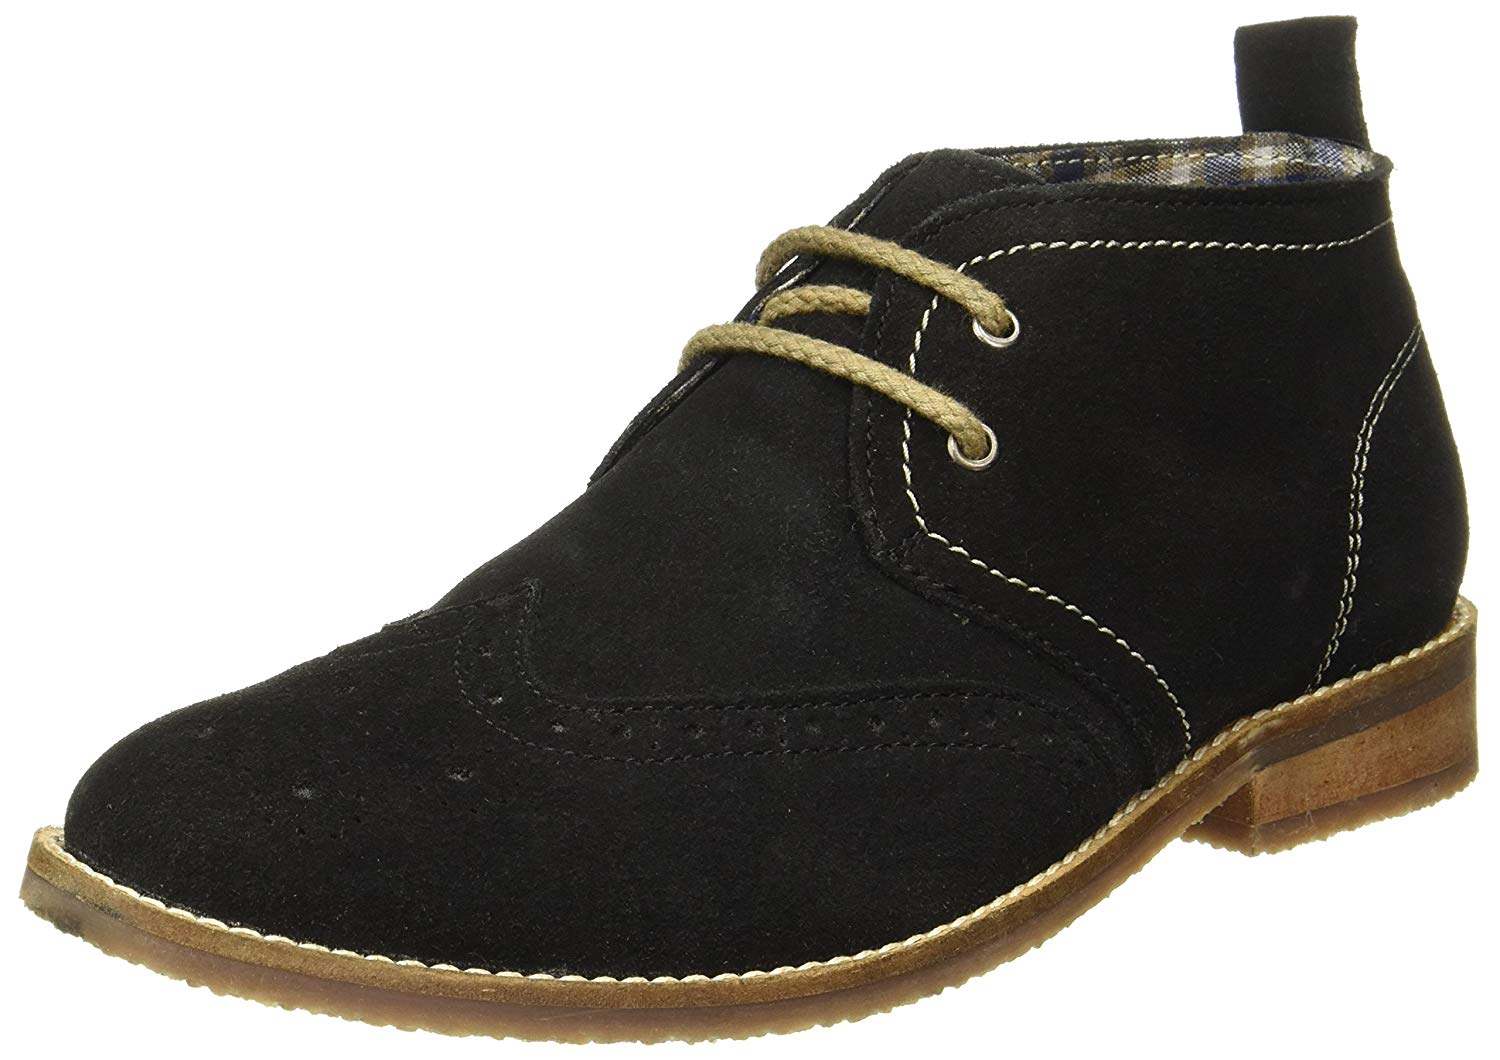 (Size 8) BATA Men's Depp Boots- Amazon